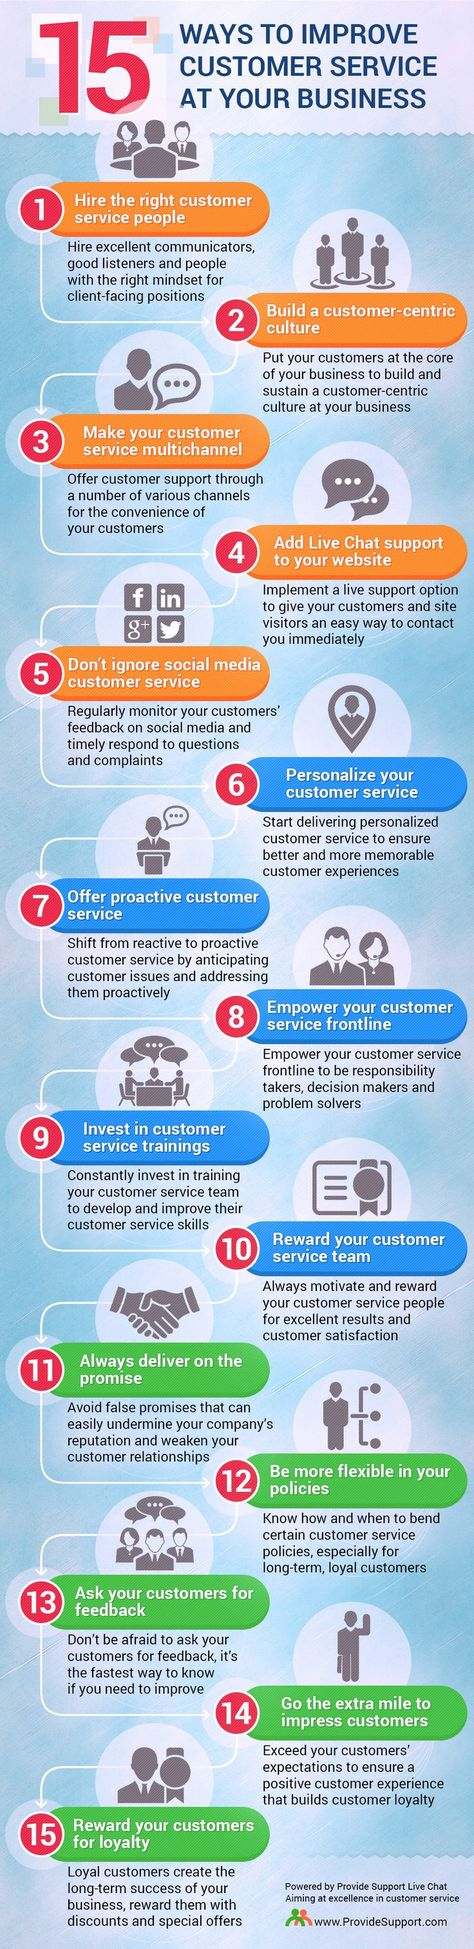 Inspiring Customer Service Quotes From Leaders Inforgraphic